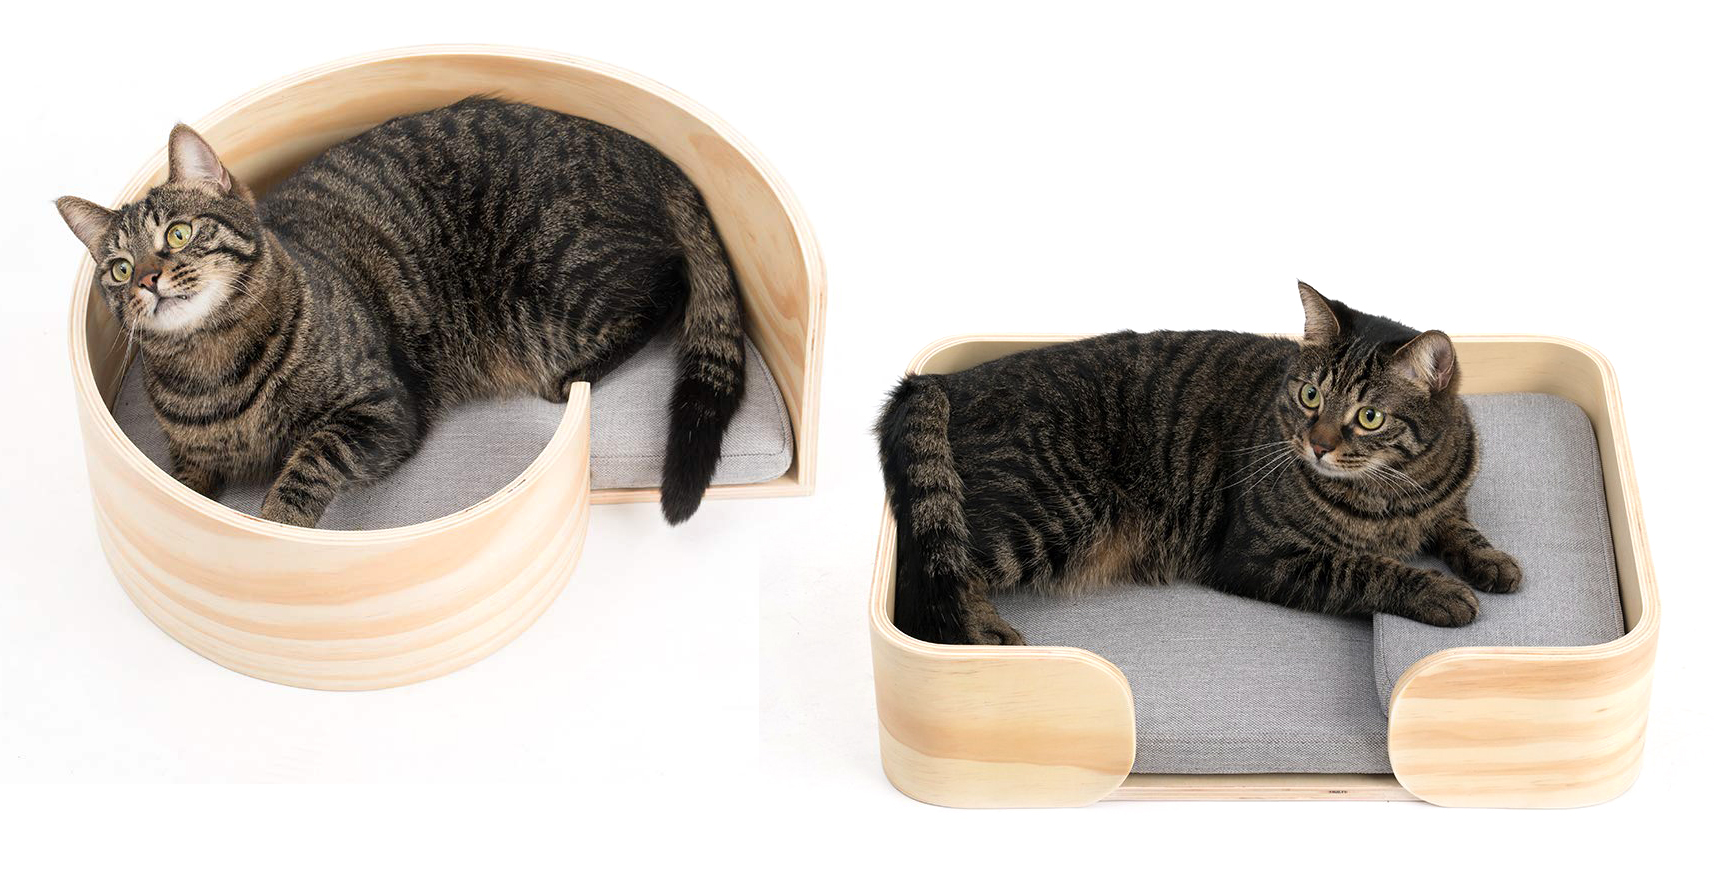 Designer Cat Beds Woodencat Modern Cat Beds From Pidan Studio Hauspanther